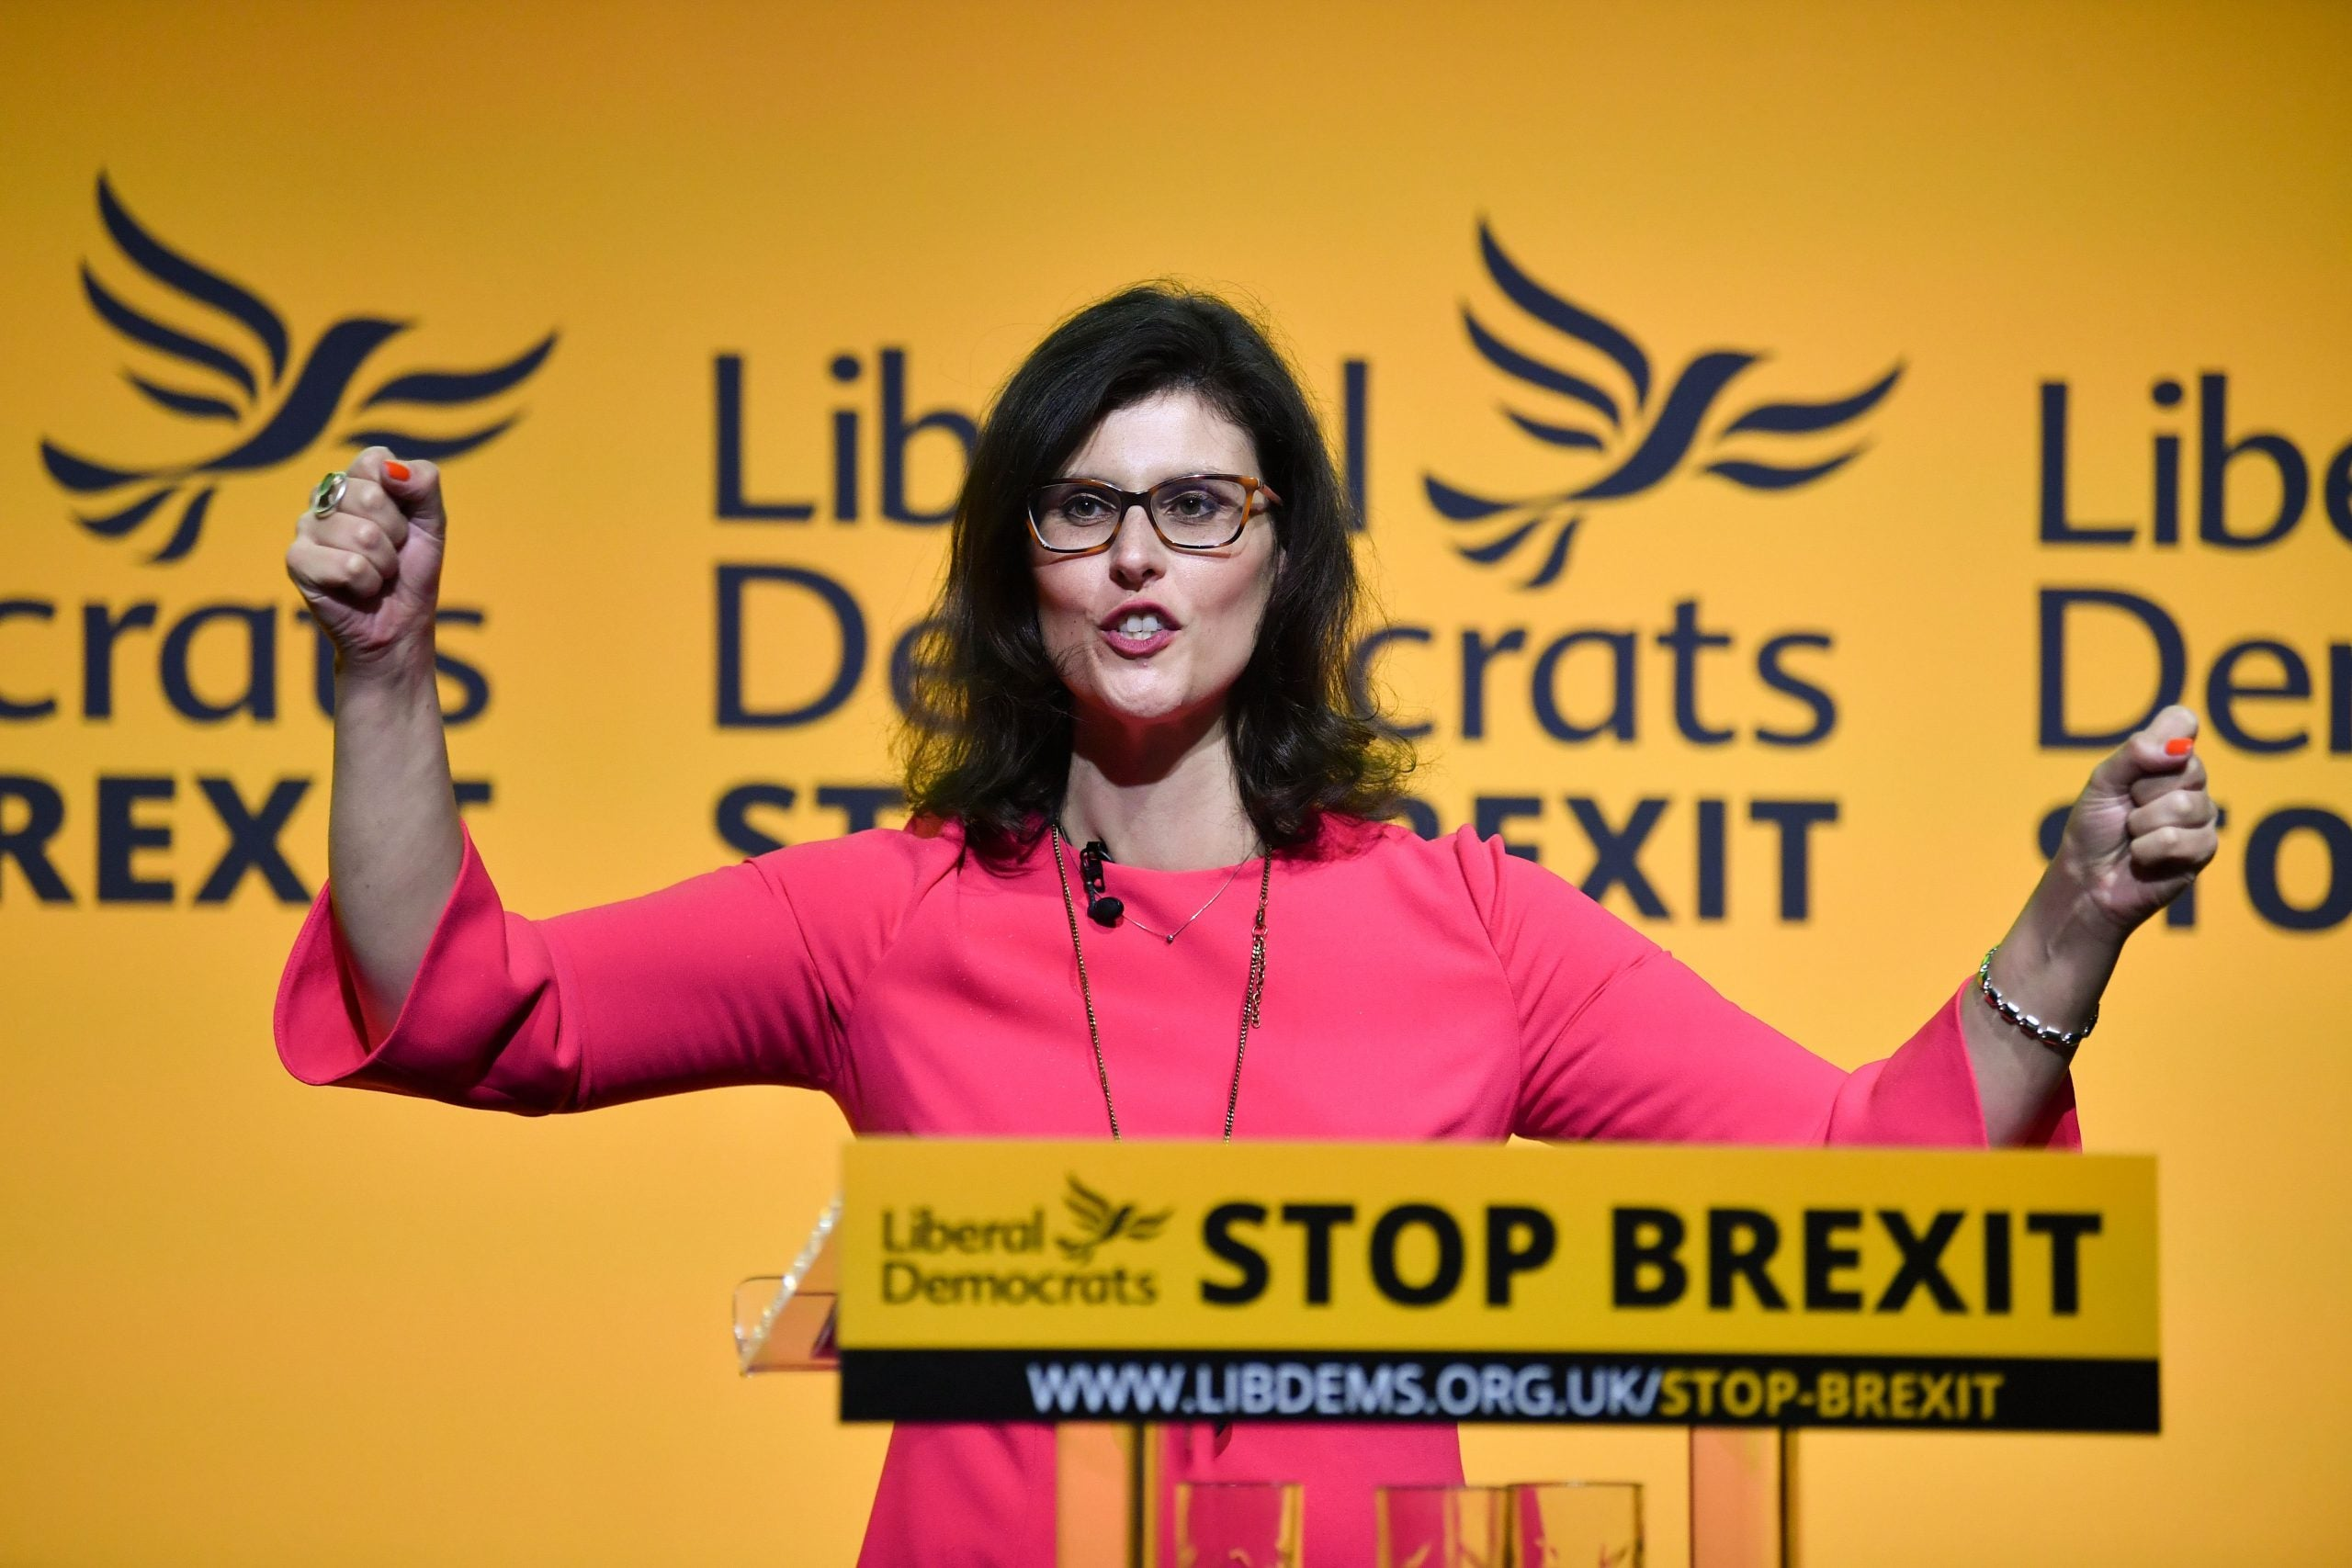 Exclusive: Liberal Democrats unveil plan to give £9,000 to over-25s for adult education